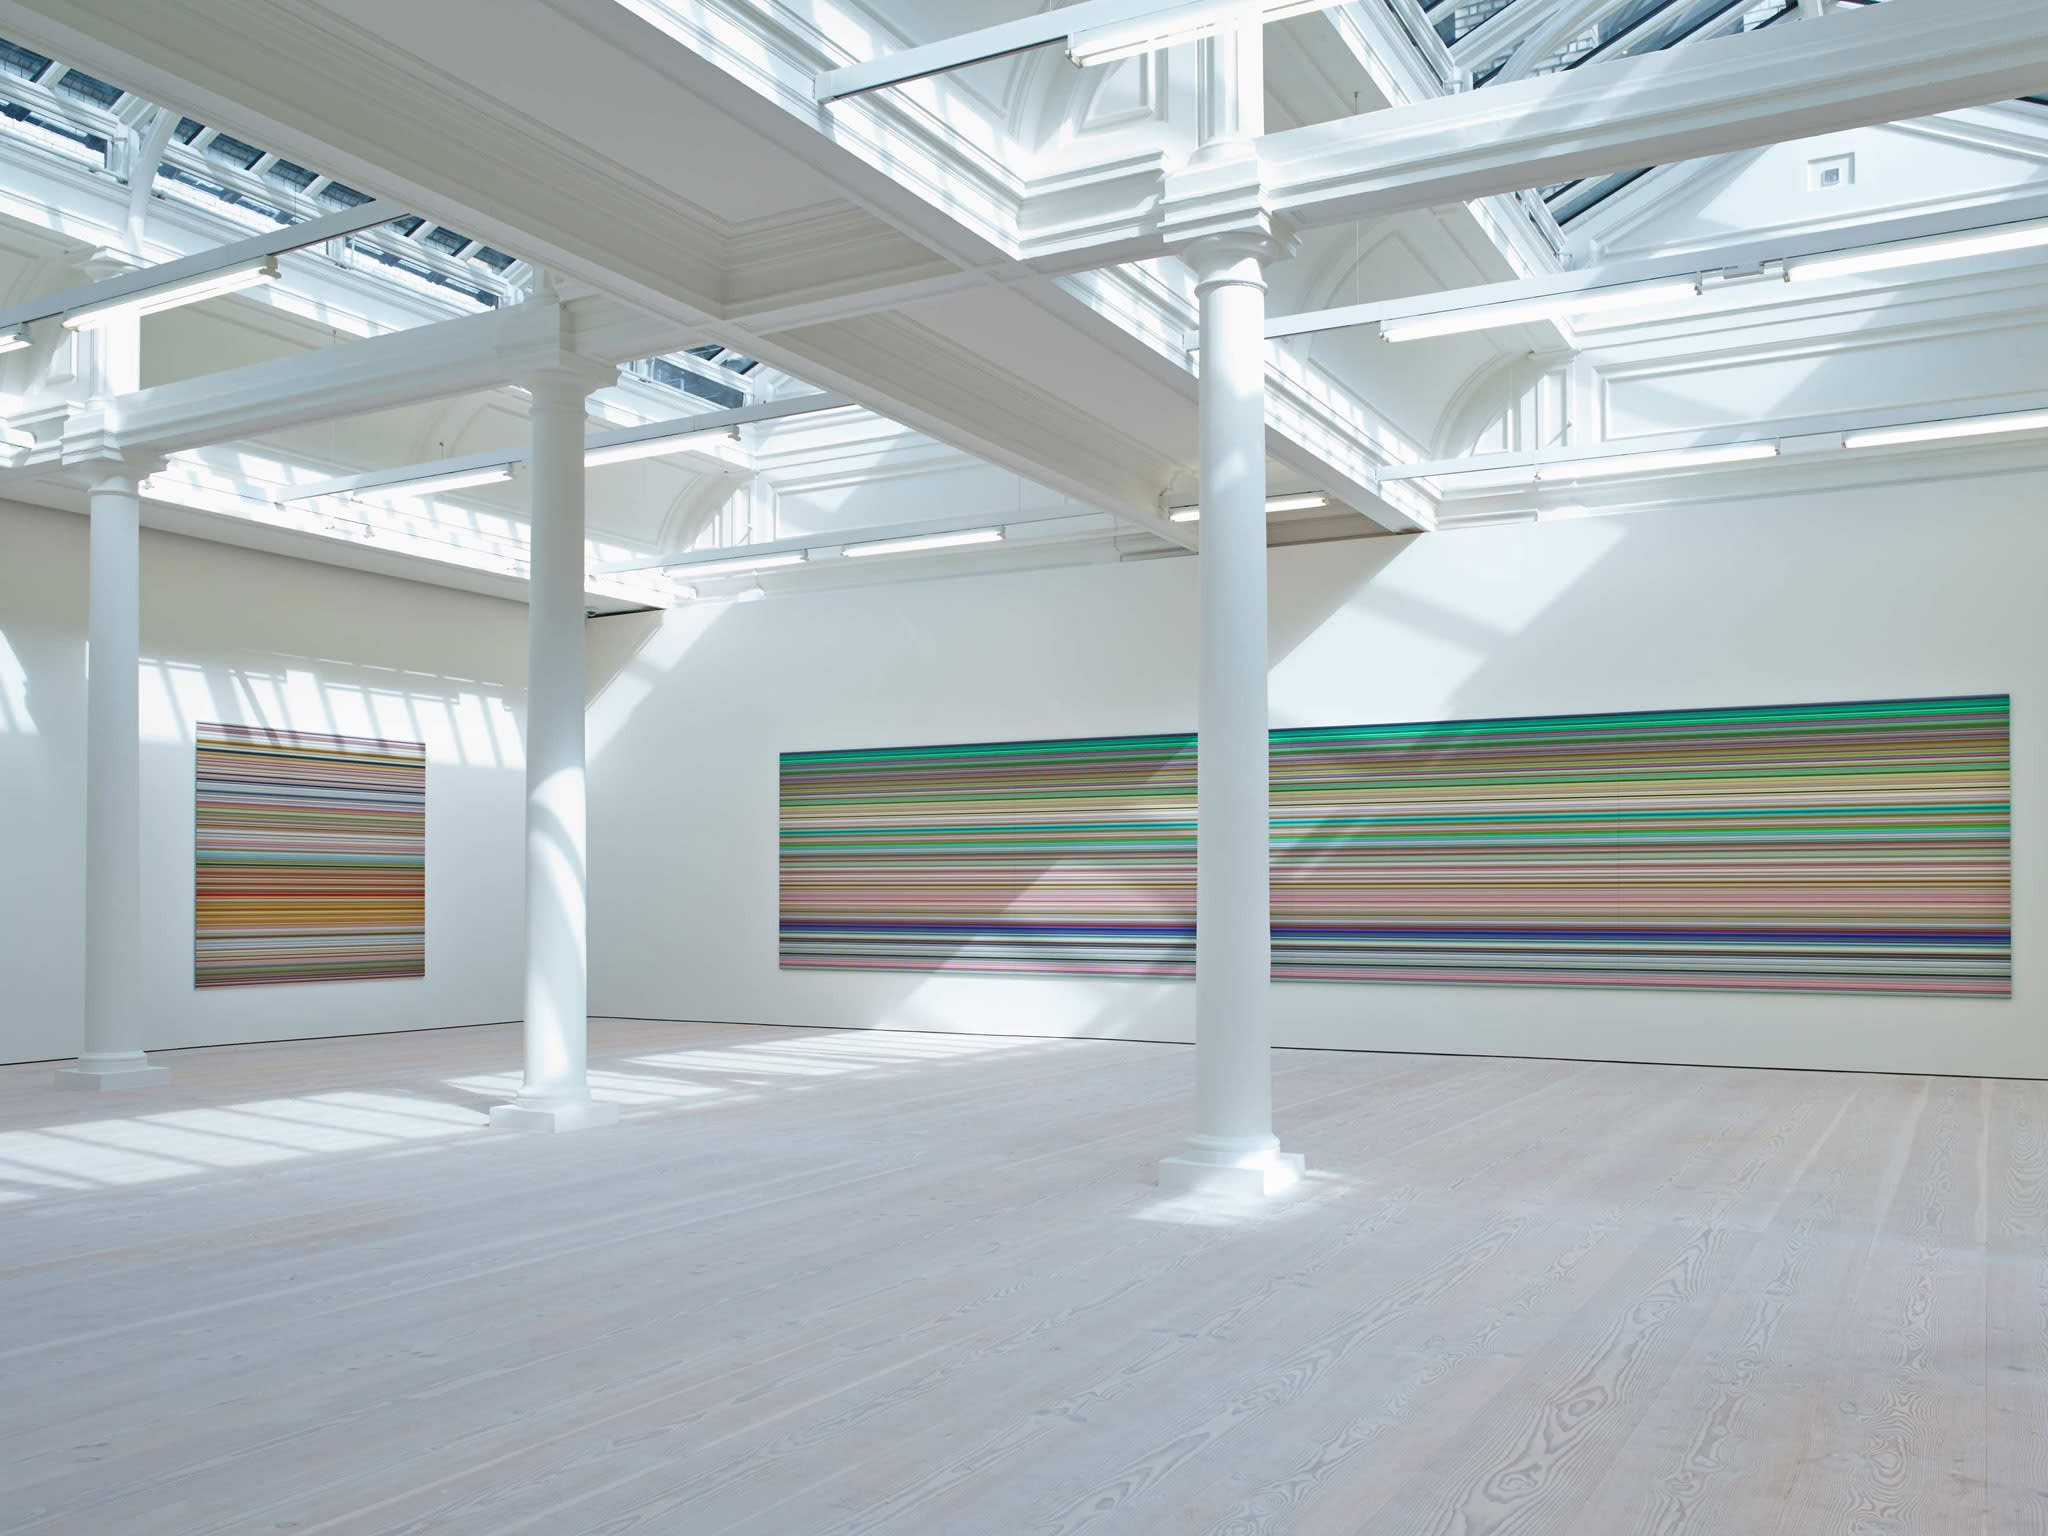 In a large white space with columns and skylights, an enormous painting hangs, light from the skylight shining on it. It is made up of hundreds of perfect horizontal strips of various colors, mostly light green in hue, with a great deal of reds and blues.